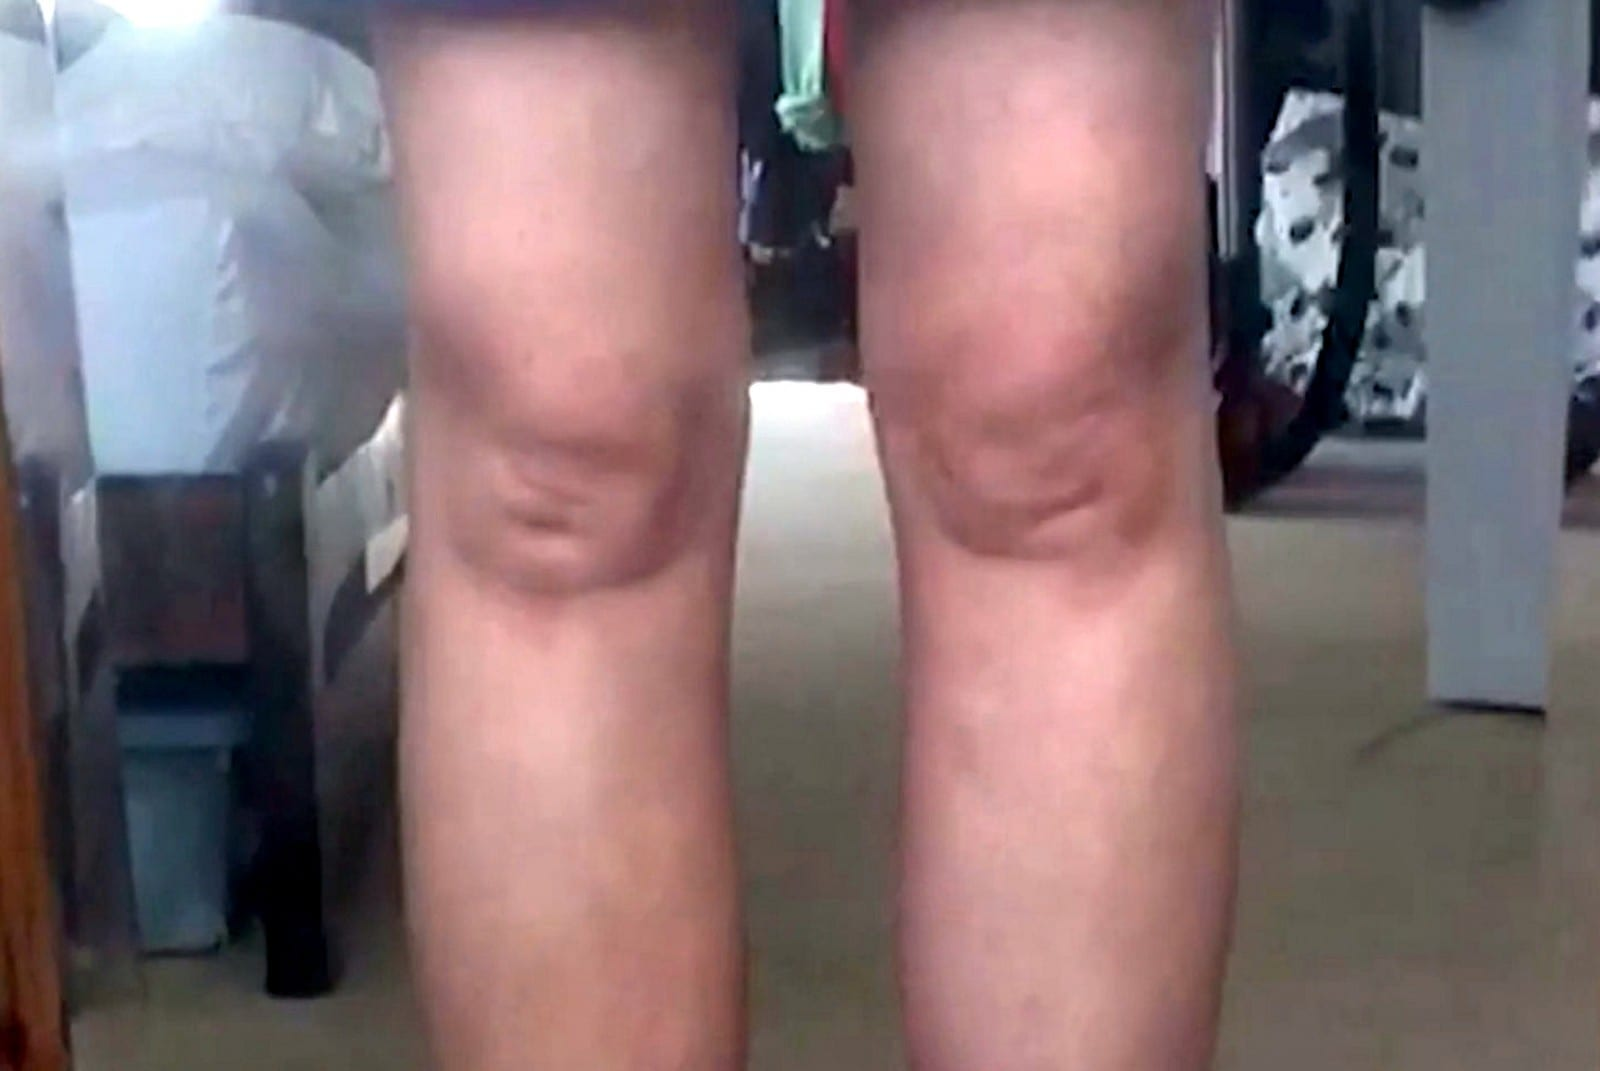 'I've Got Them Out At Parties Before' - Woman Has Knees That Resemble Both Mitchell Brothers!